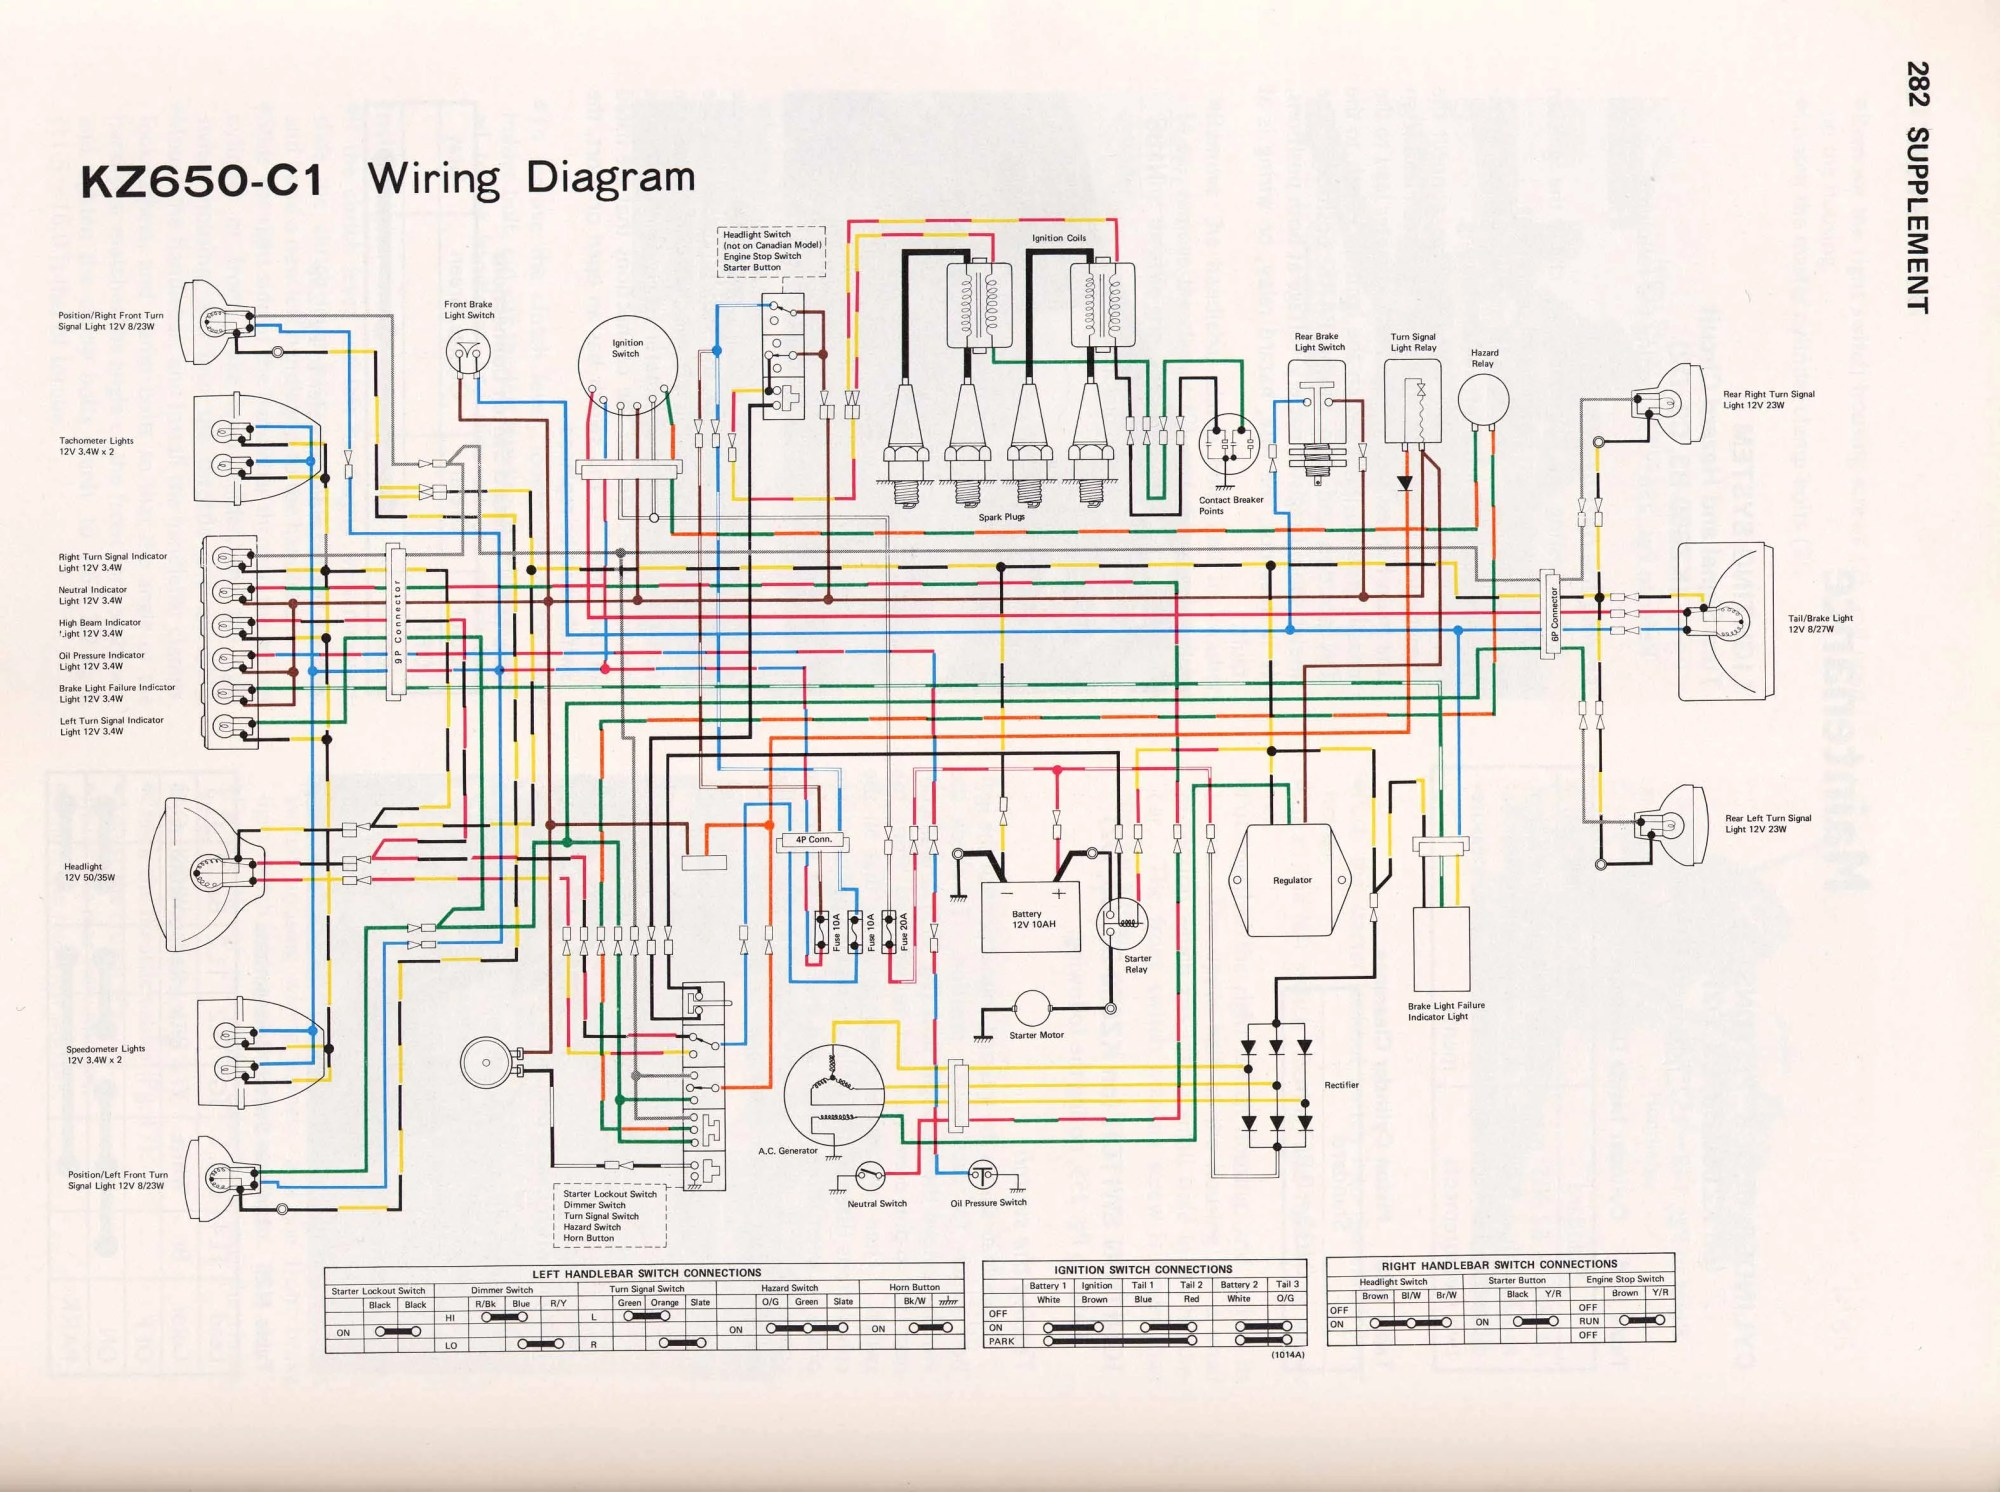 hight resolution of kawasaki zephyr 750 wiring diagram wiring diagram kawasaki zephyr 750 wiring diagram kawasaki zephyr 750 wiring diagram